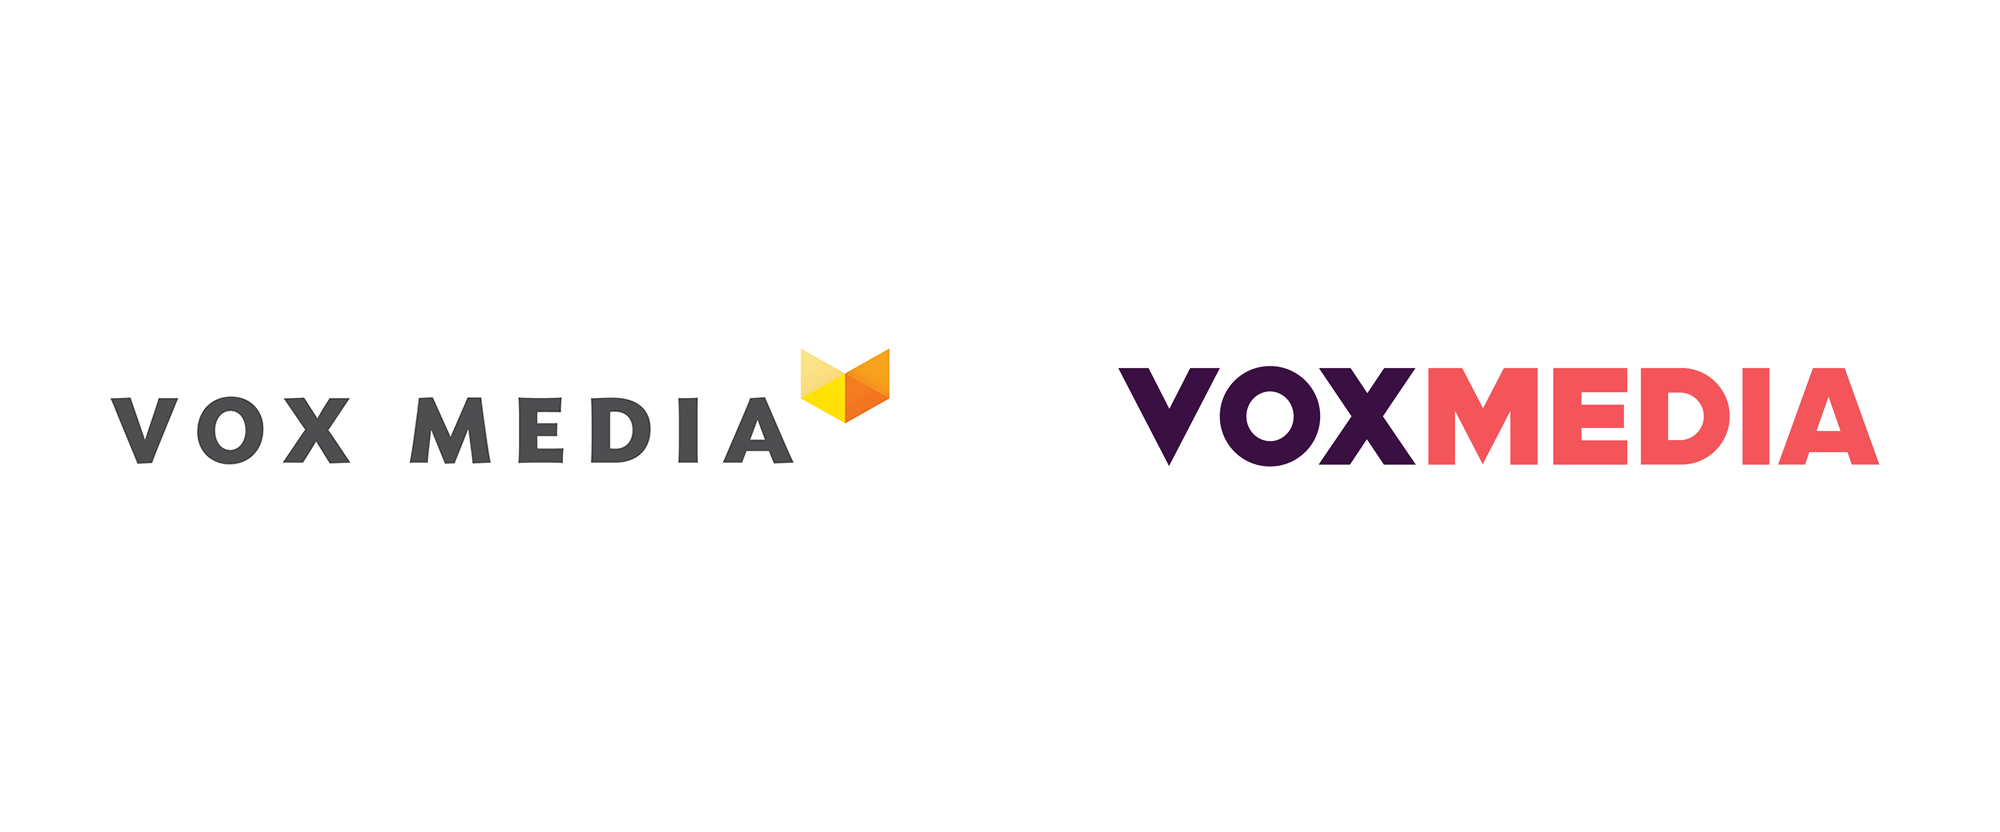 New Logo for Vox Media by Triboro and In-house